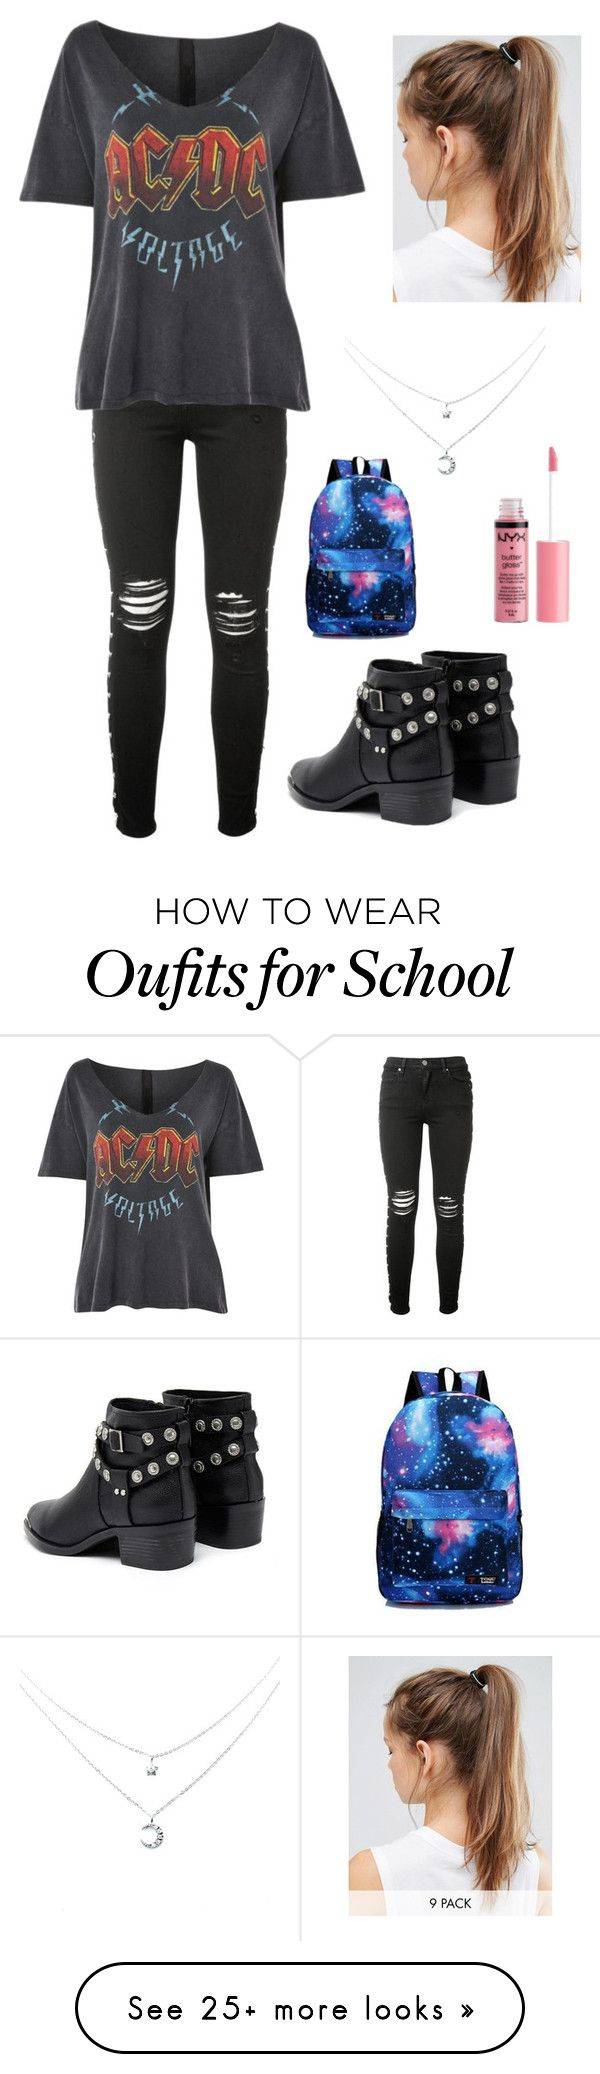 """School"" by ccxcool on Polyvore featuring AMIRI, Topshop, Senso, NIKE and Charlotte Russe"